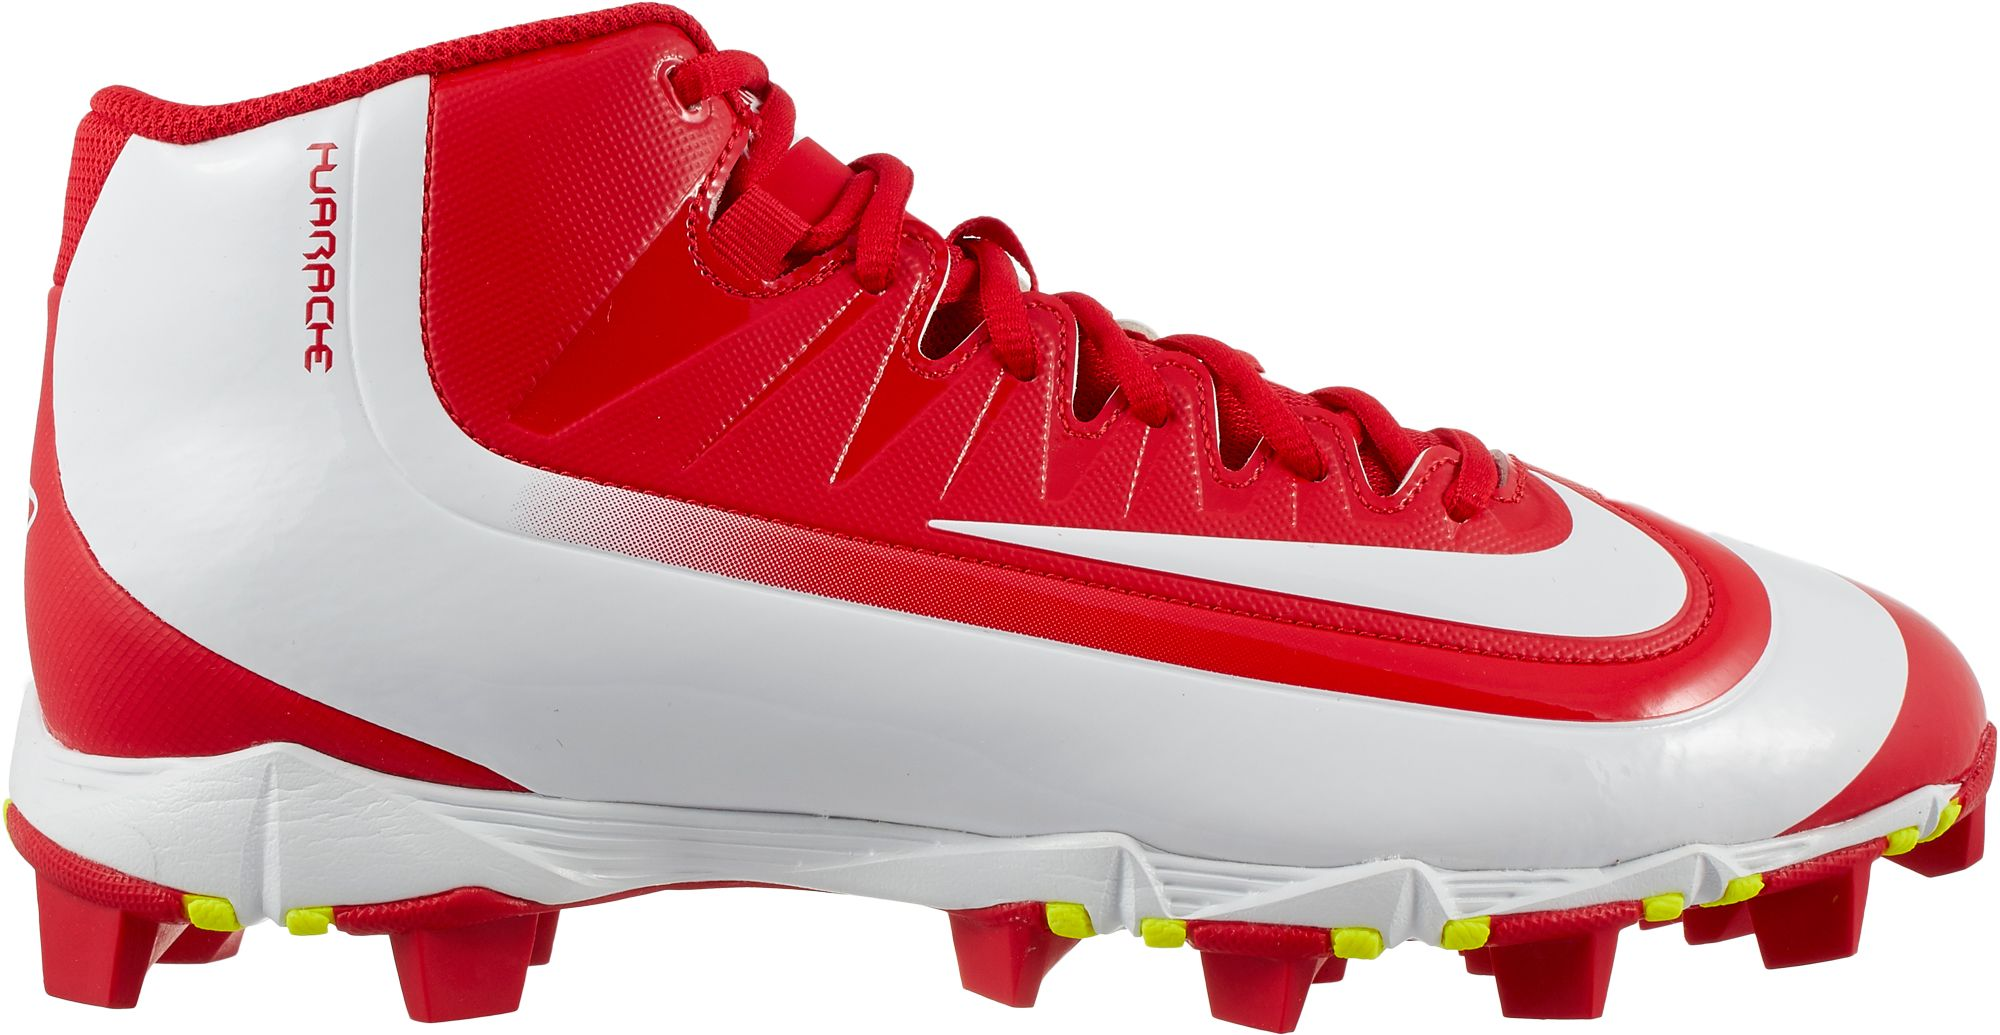 Exceptionnel Baseball Cleats - Men's & Youth | DICK'S Sporting Goods BF52